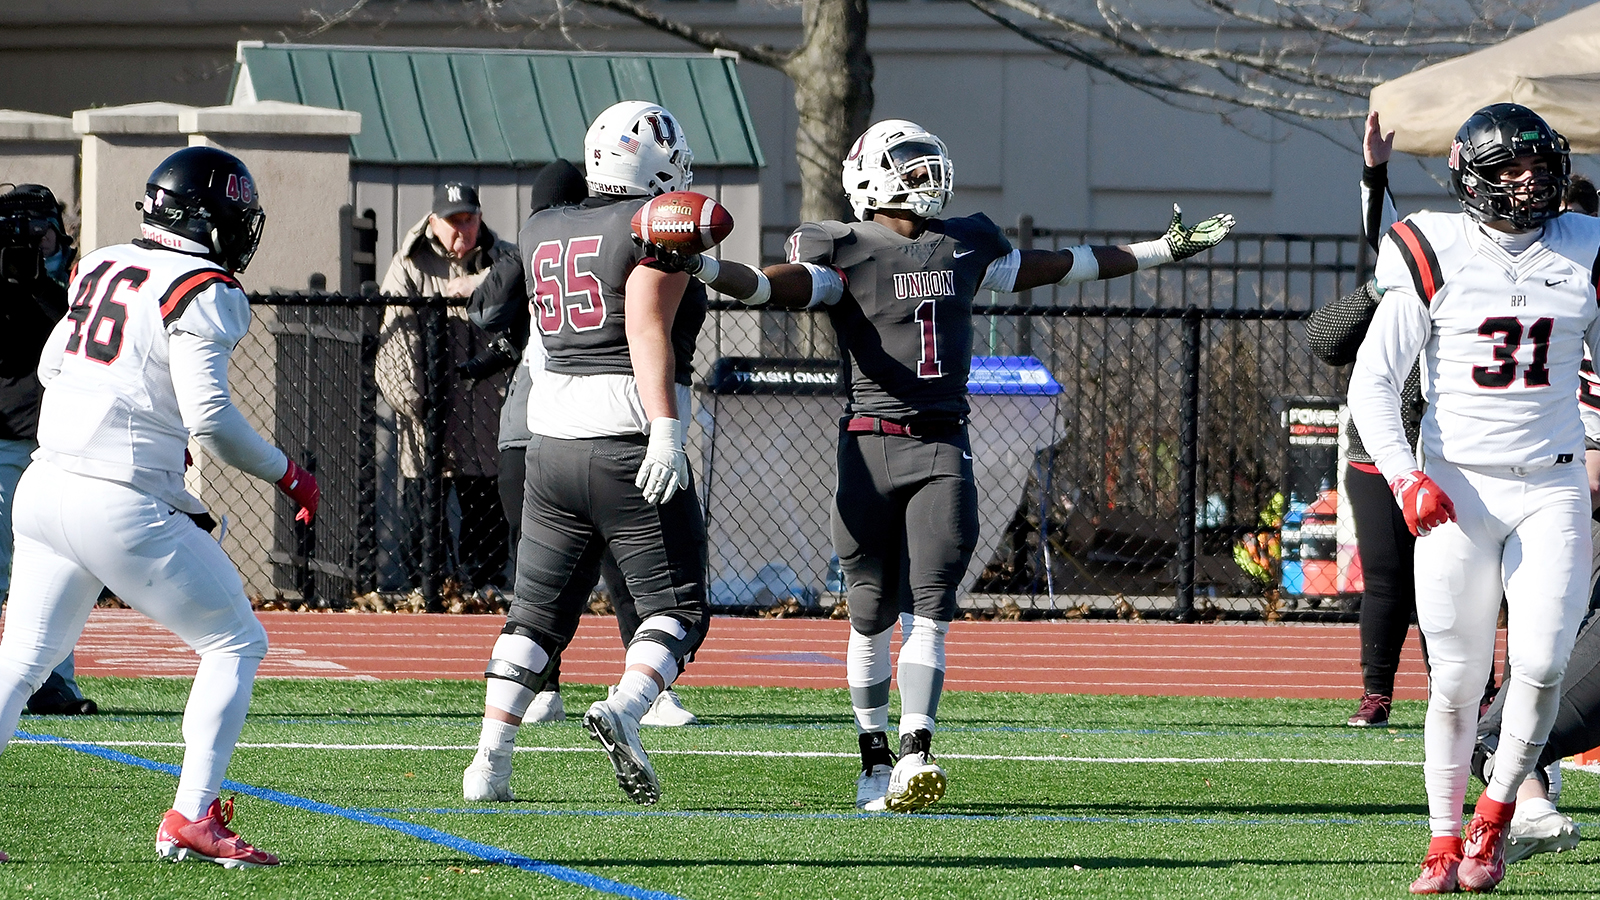 Dutchmen Open Ncaa Play At Home Union College Athletics